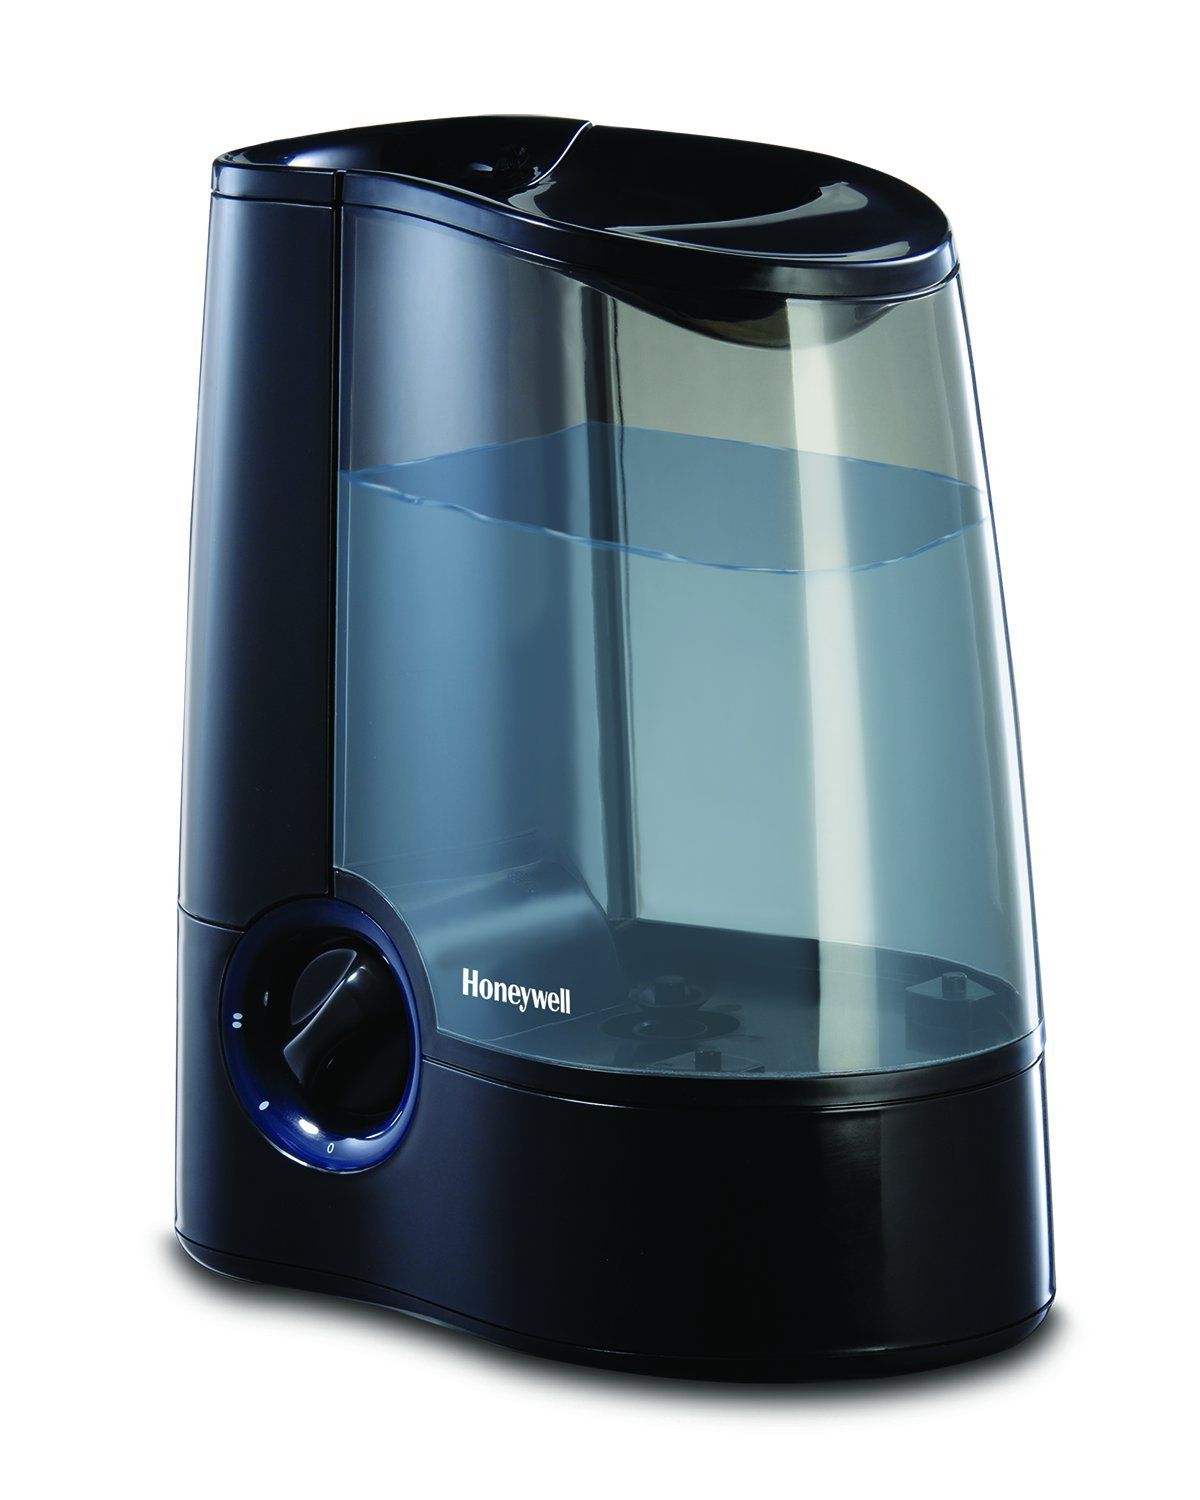 Honeywell Warm Moisture Humidifier - HWM705BC